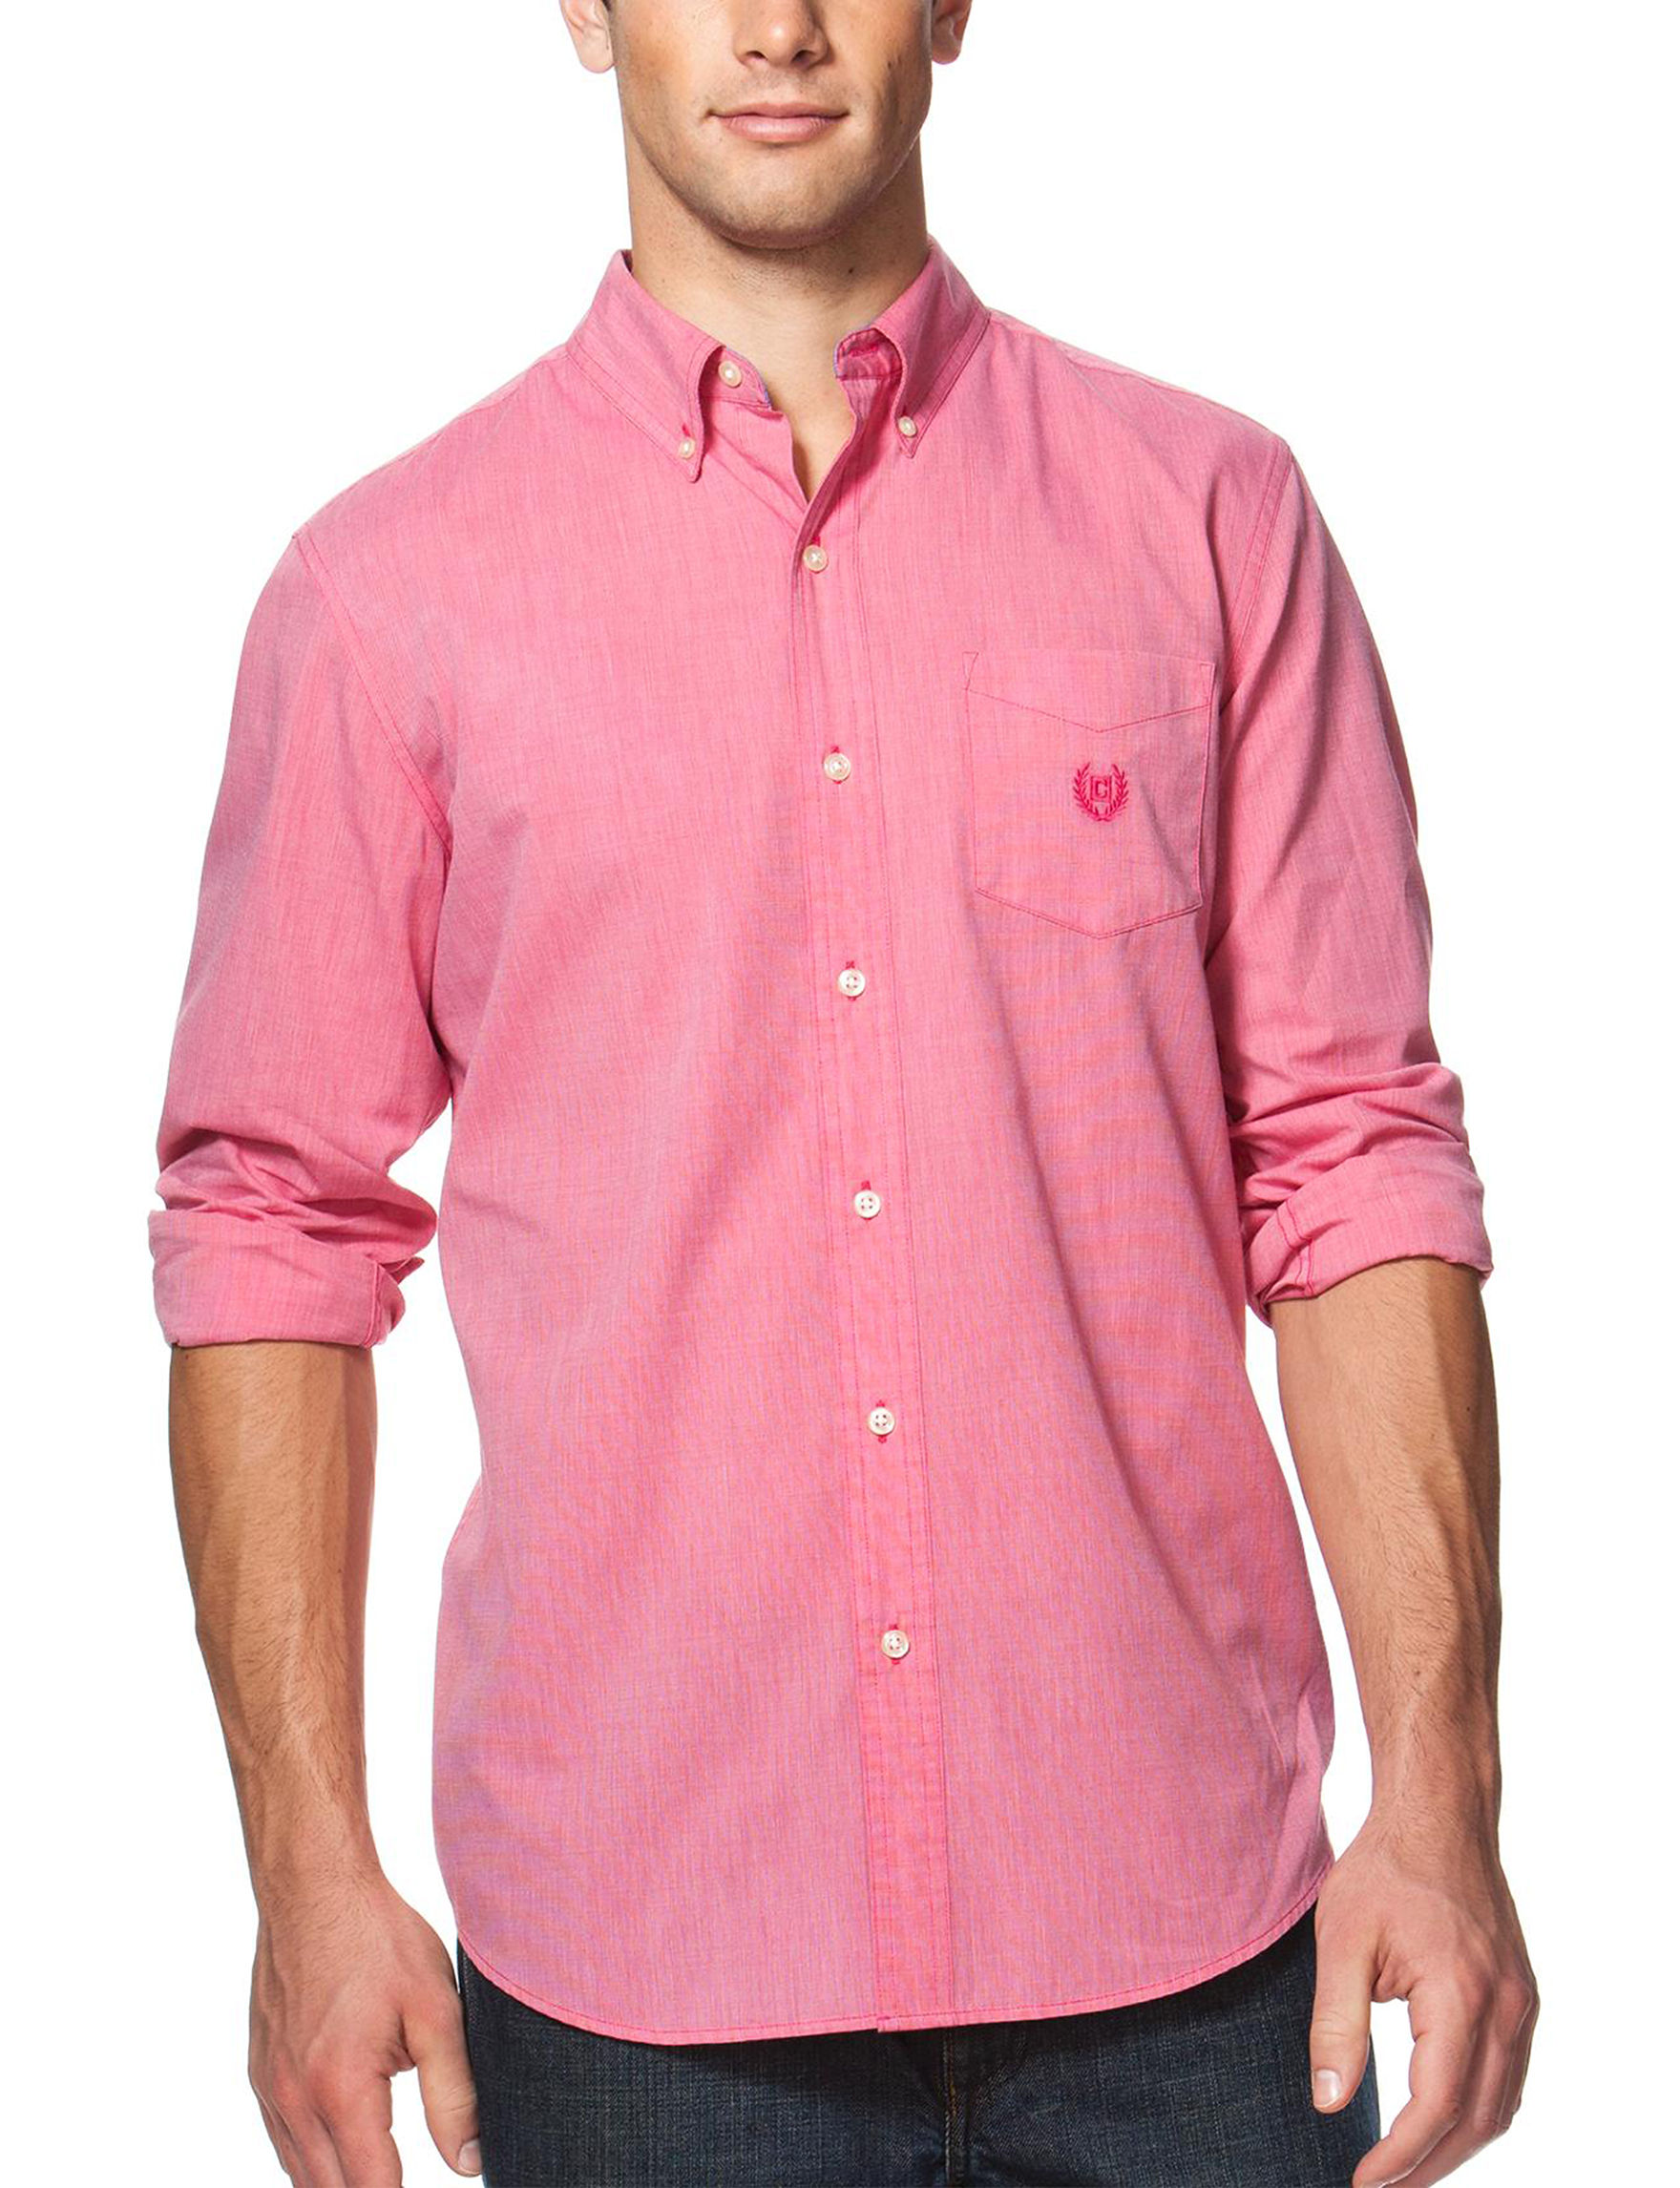 Chaps Pink Casual Button Down Shirts